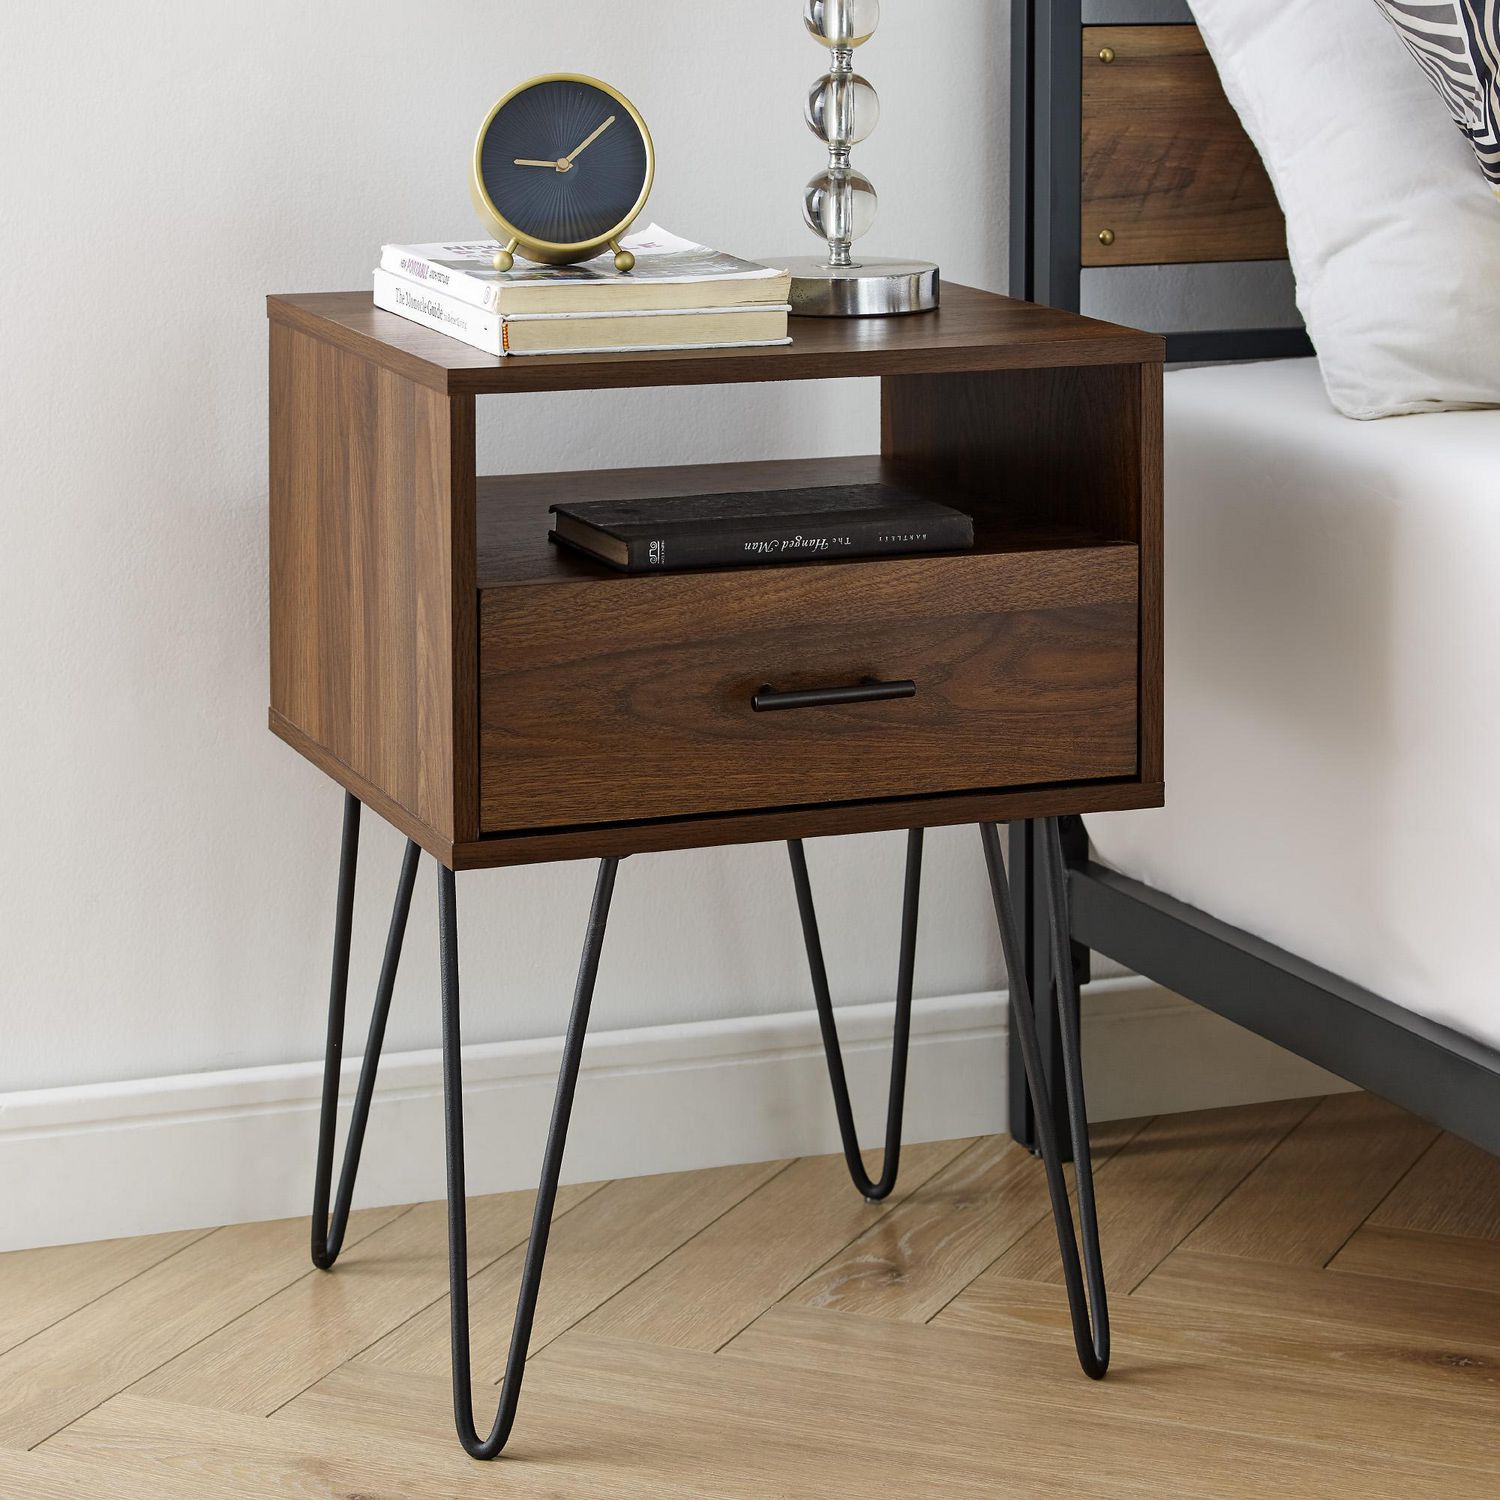 Image of: Mid Century Modern Side Table And Nightstand With Storage Drawer Dark Walnut Walmart Canada